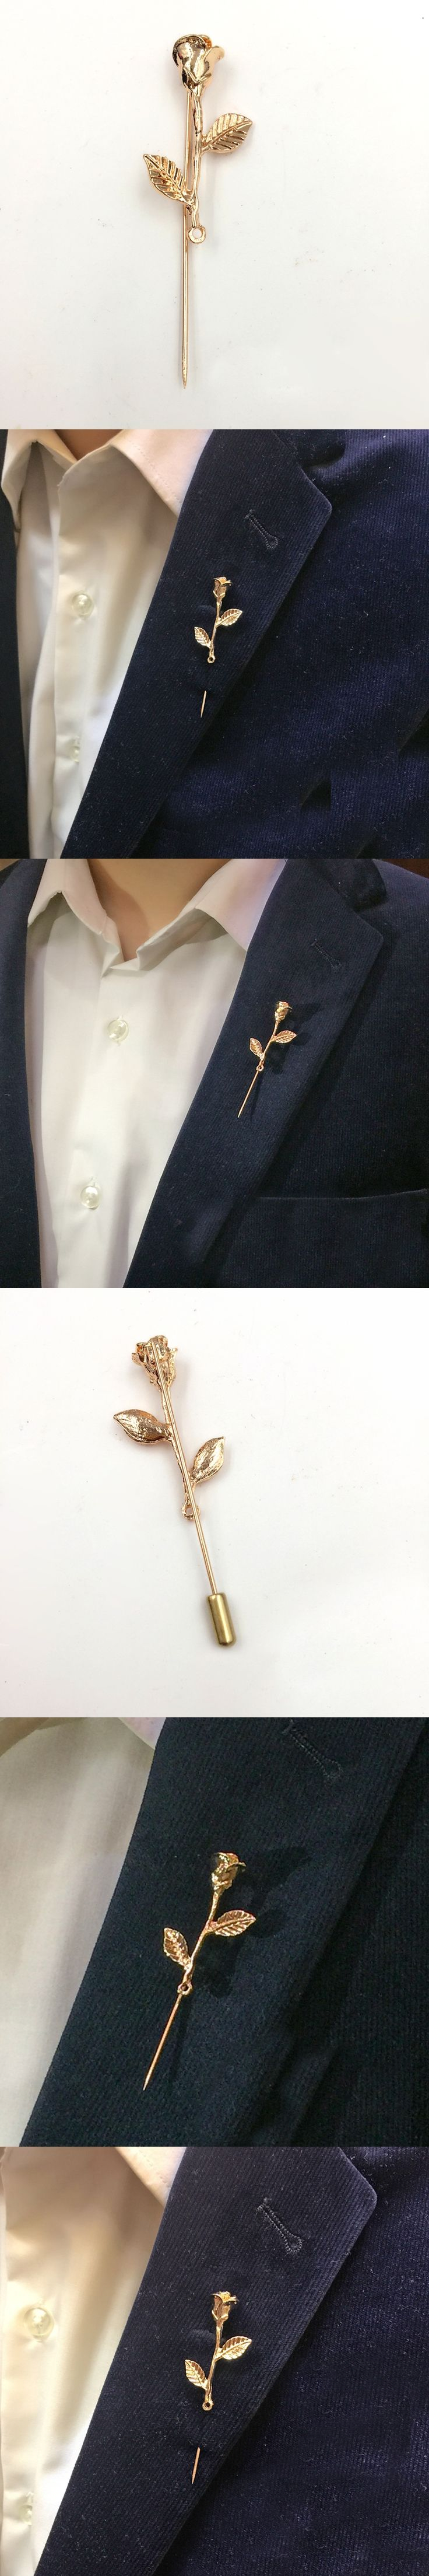 Unisex Rose Flower Brooch Pin Men Suit Accessories Classic Lapel Pins for Men's Suit Wedding Party Long Pin